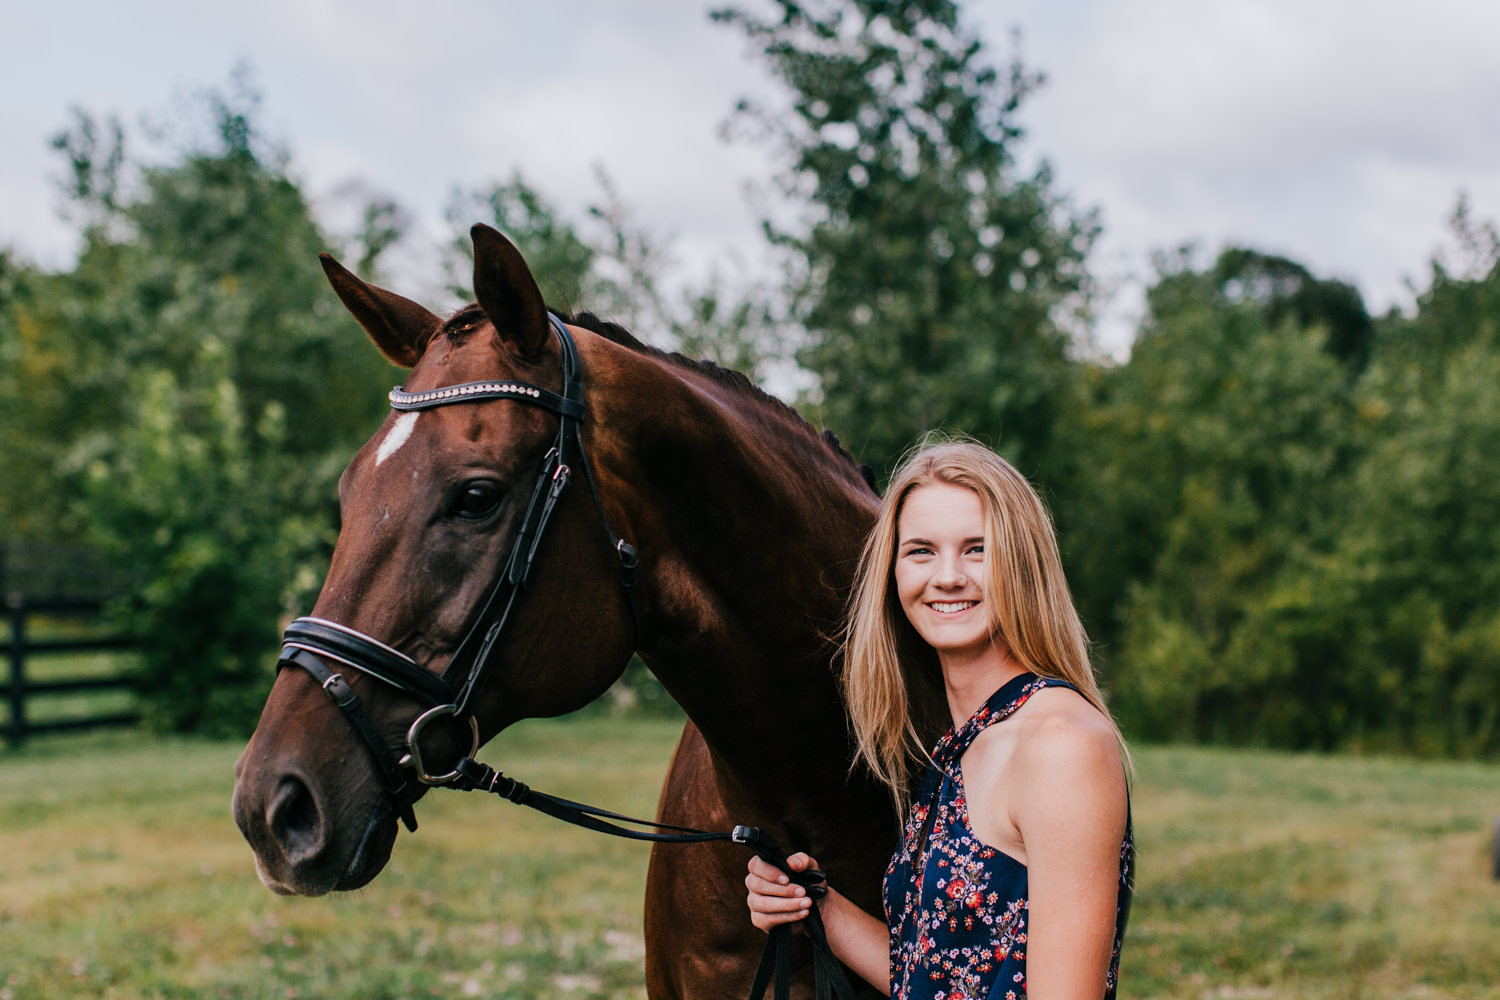 I'VE GOT A LOVE FOR CAPTURING THE HORSE-HUMAN RELATIONSHIP. - Documentary style sessions of the bond you share with your equine partner.